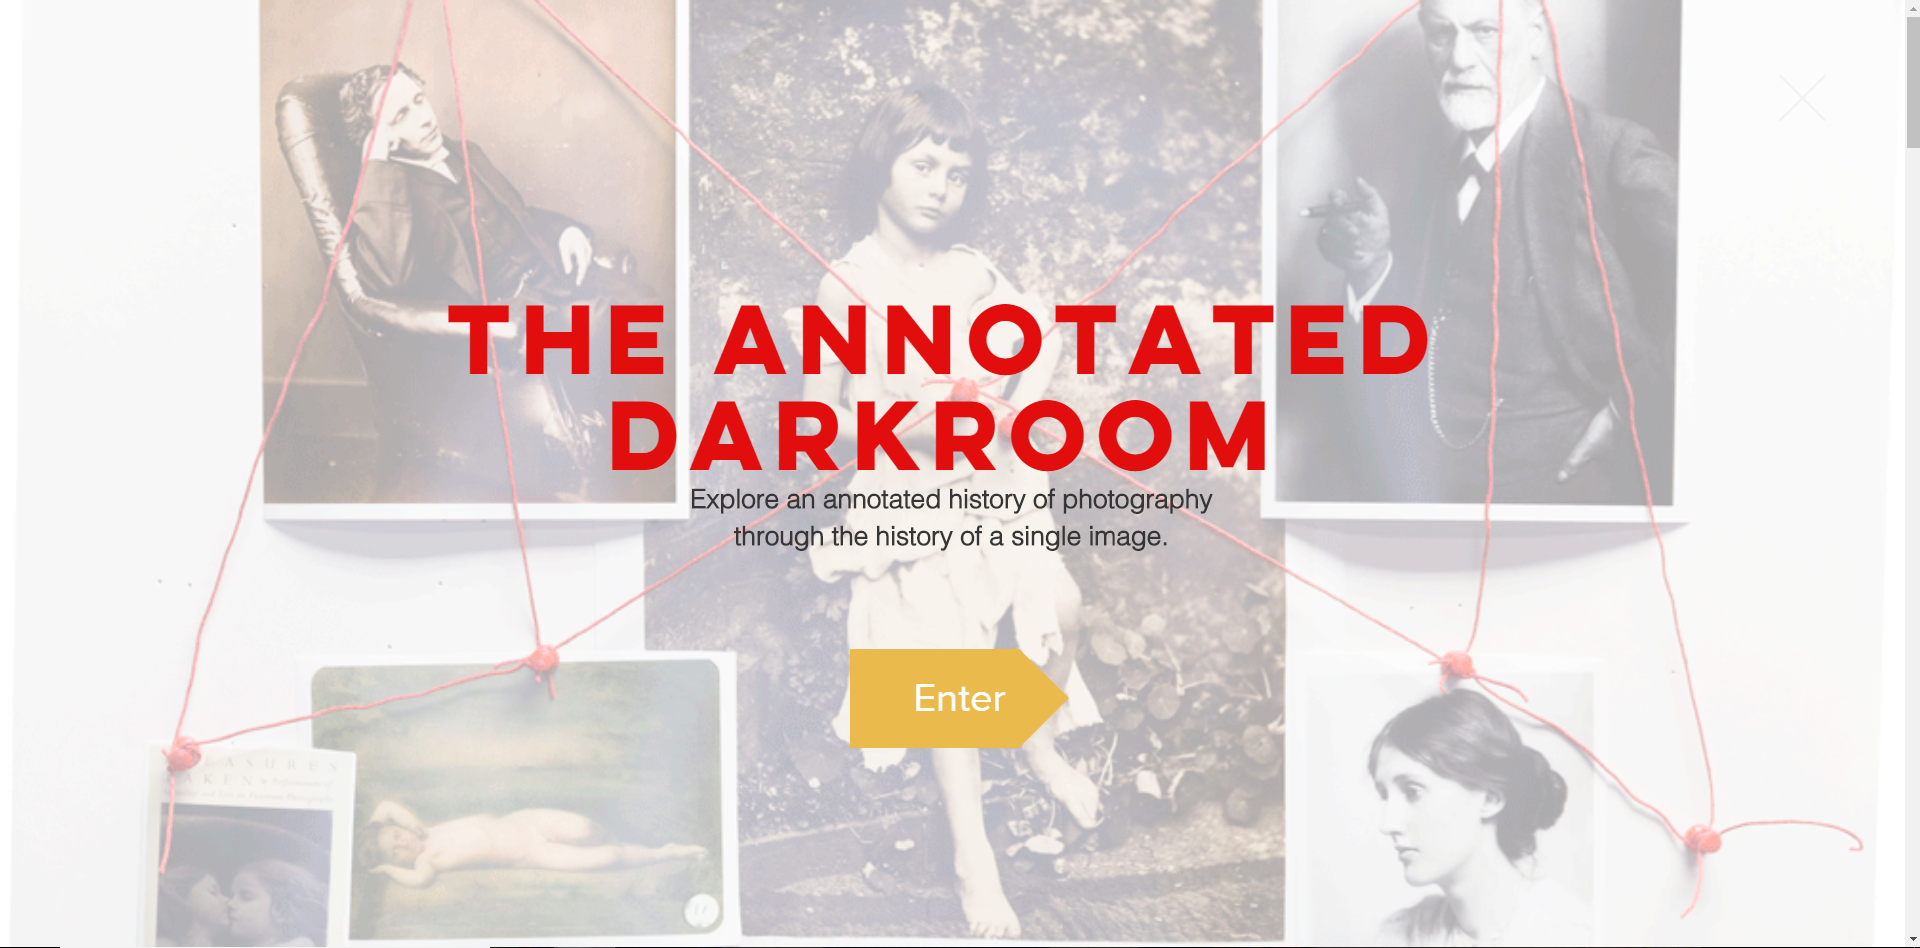 The Annotated Darkroom